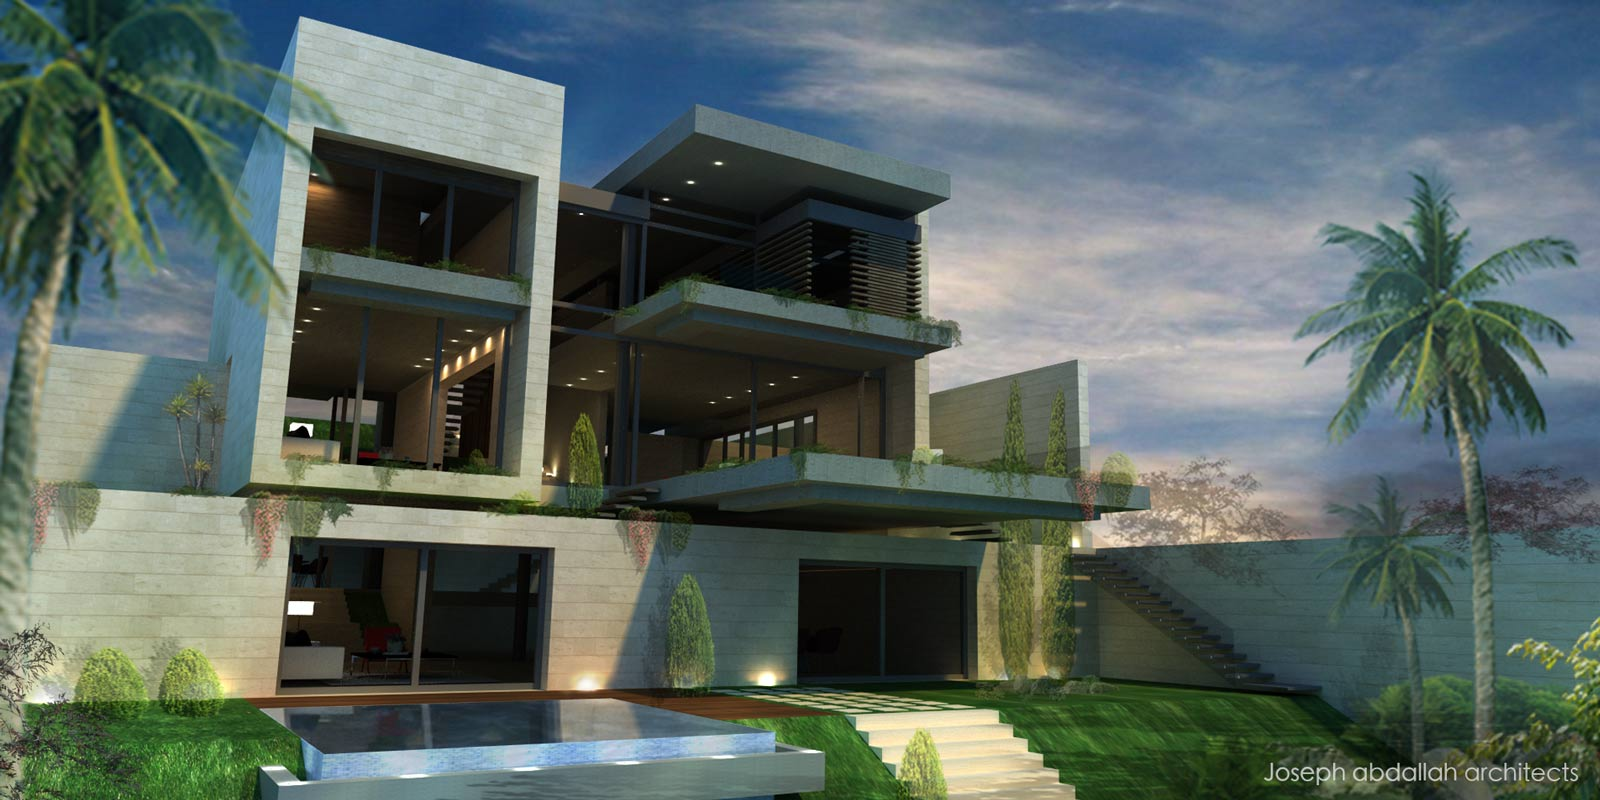 transparent-villa-modern-archiecture-joseph-abdallah-architects-2